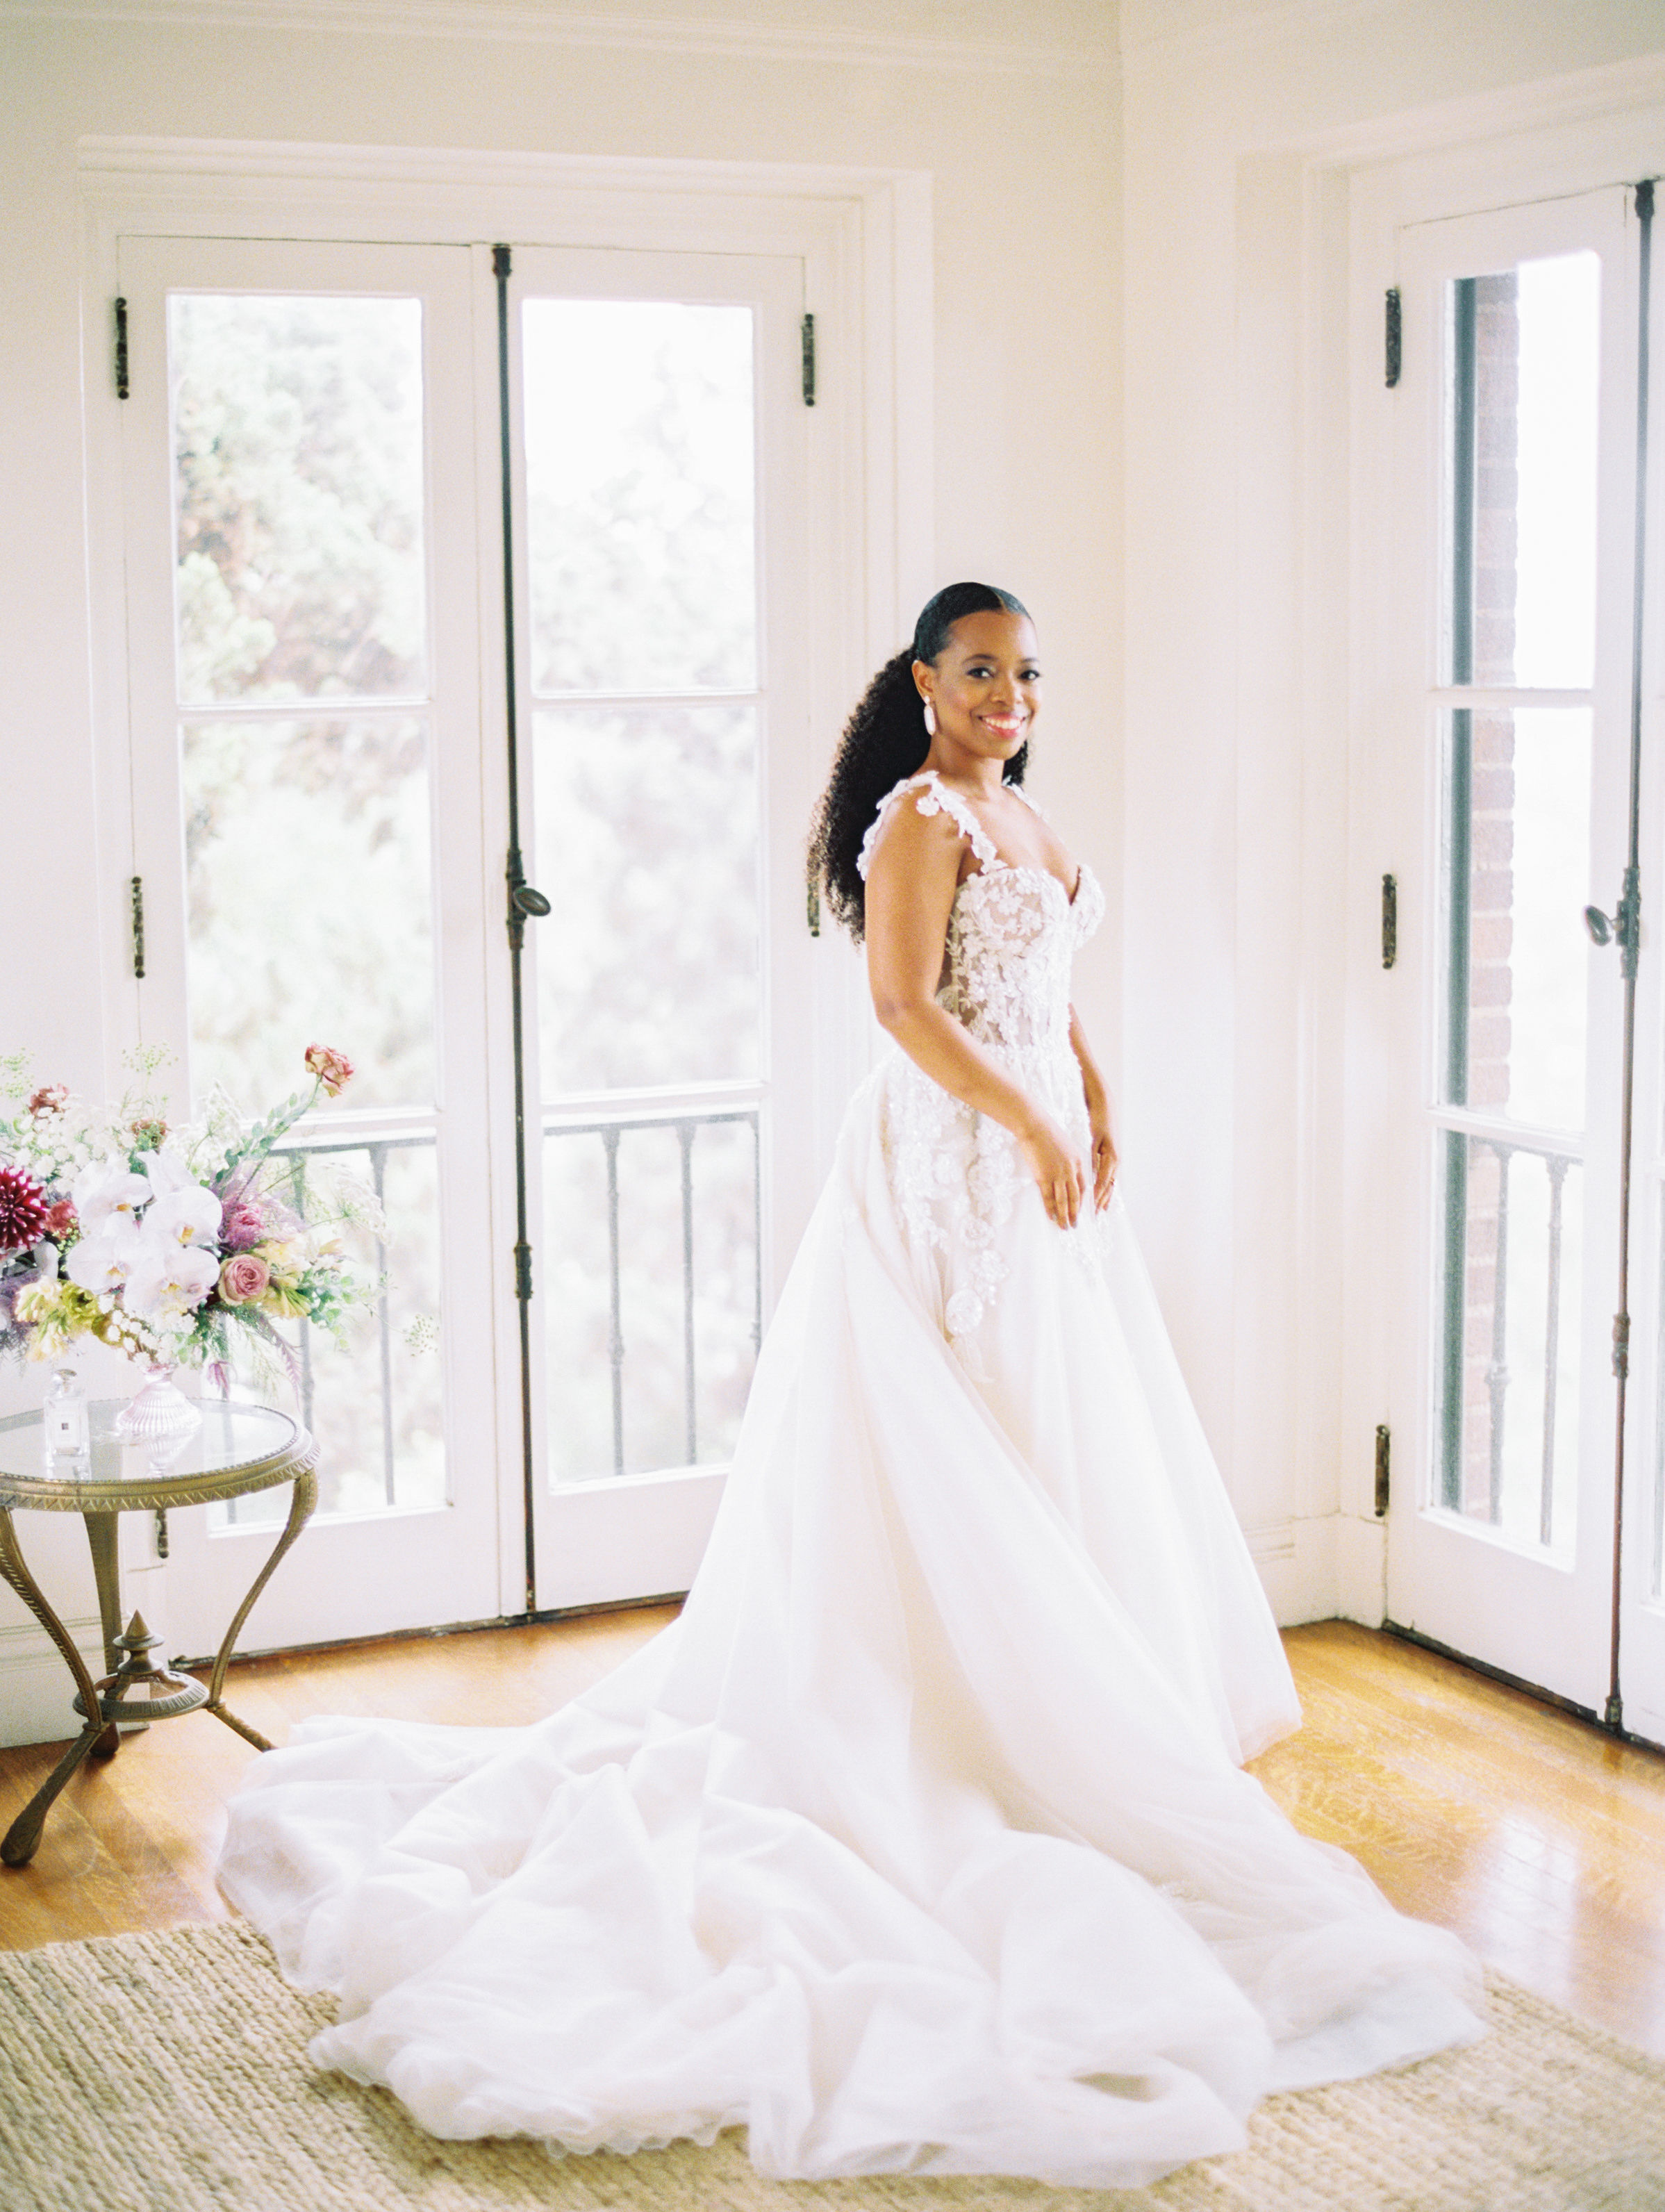 4 Skincare Ingredients to Avoid the Week Before Your Wedding